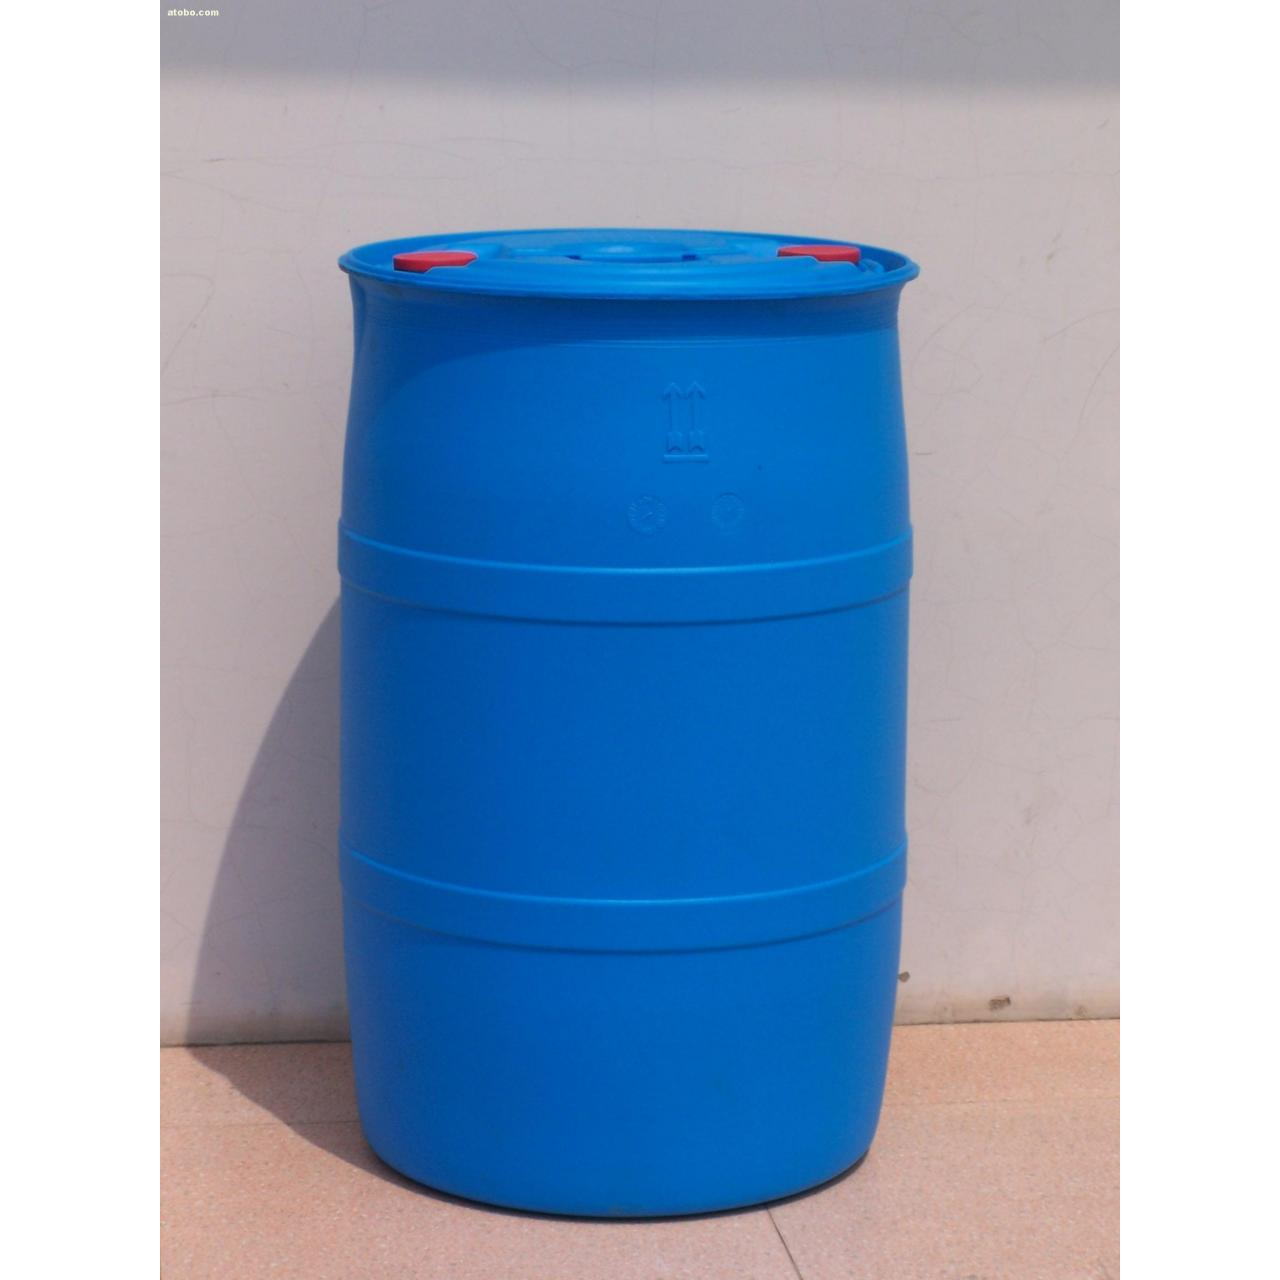 Quality alicyclic compound and derivat Ethylene glycol dimethyl ether for sale